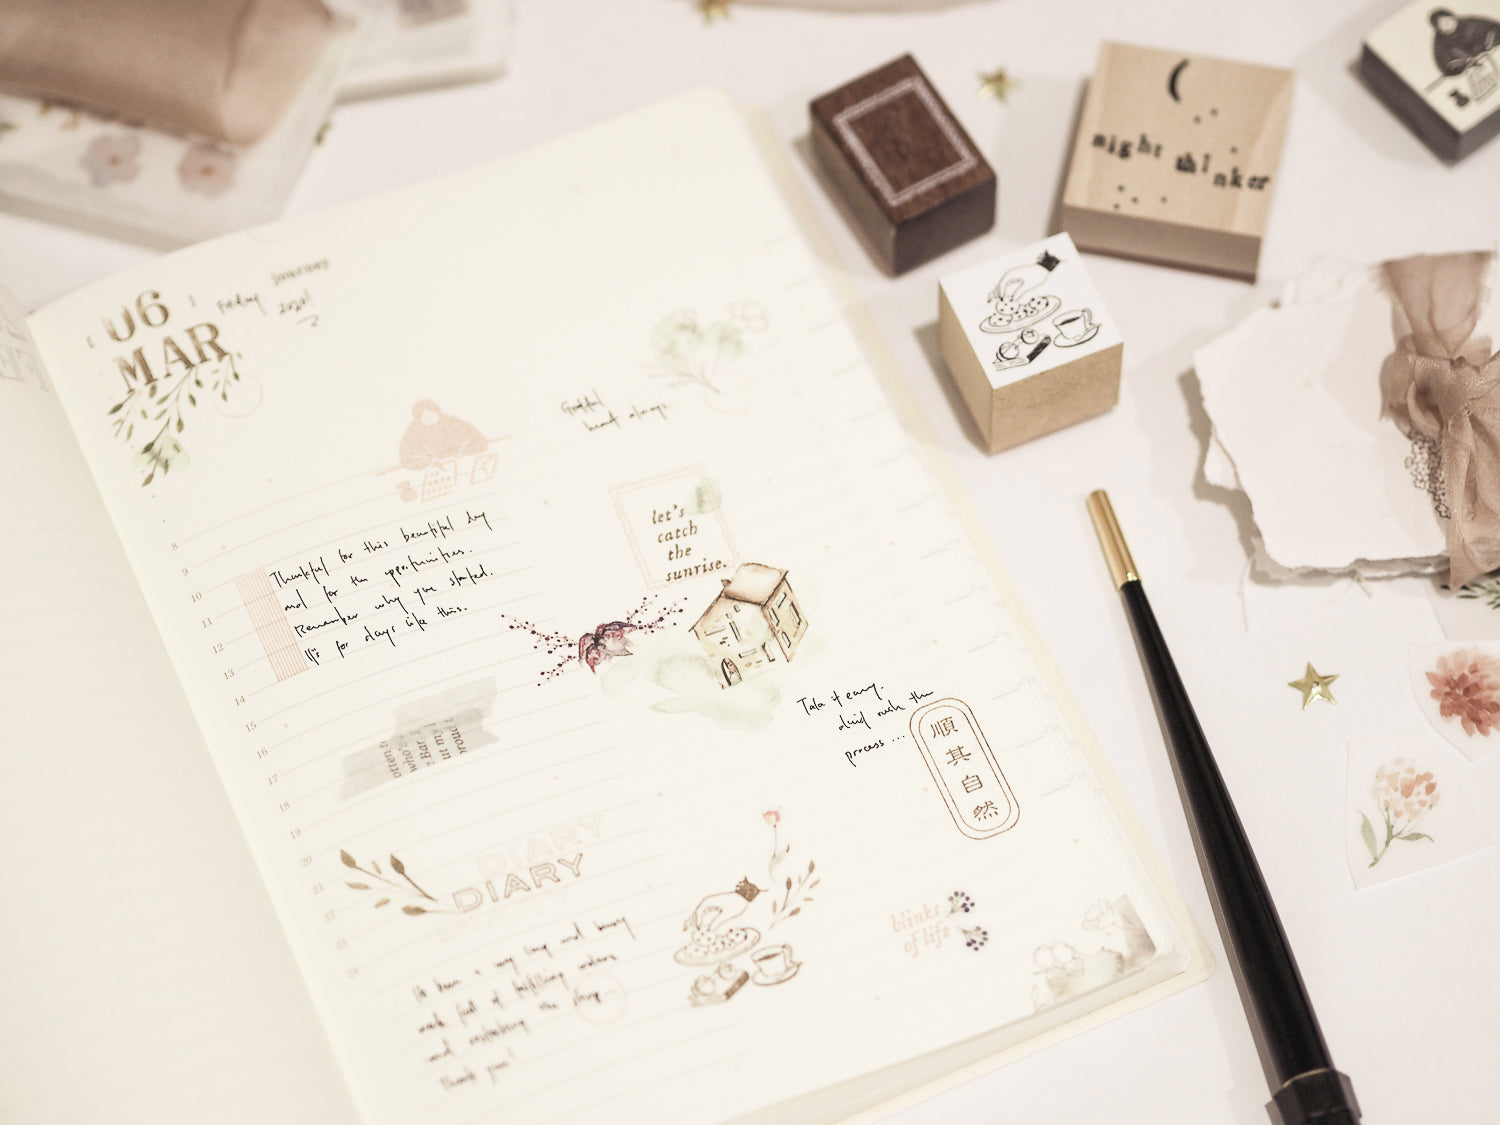 Blinks of Life Journal Stamp Shop